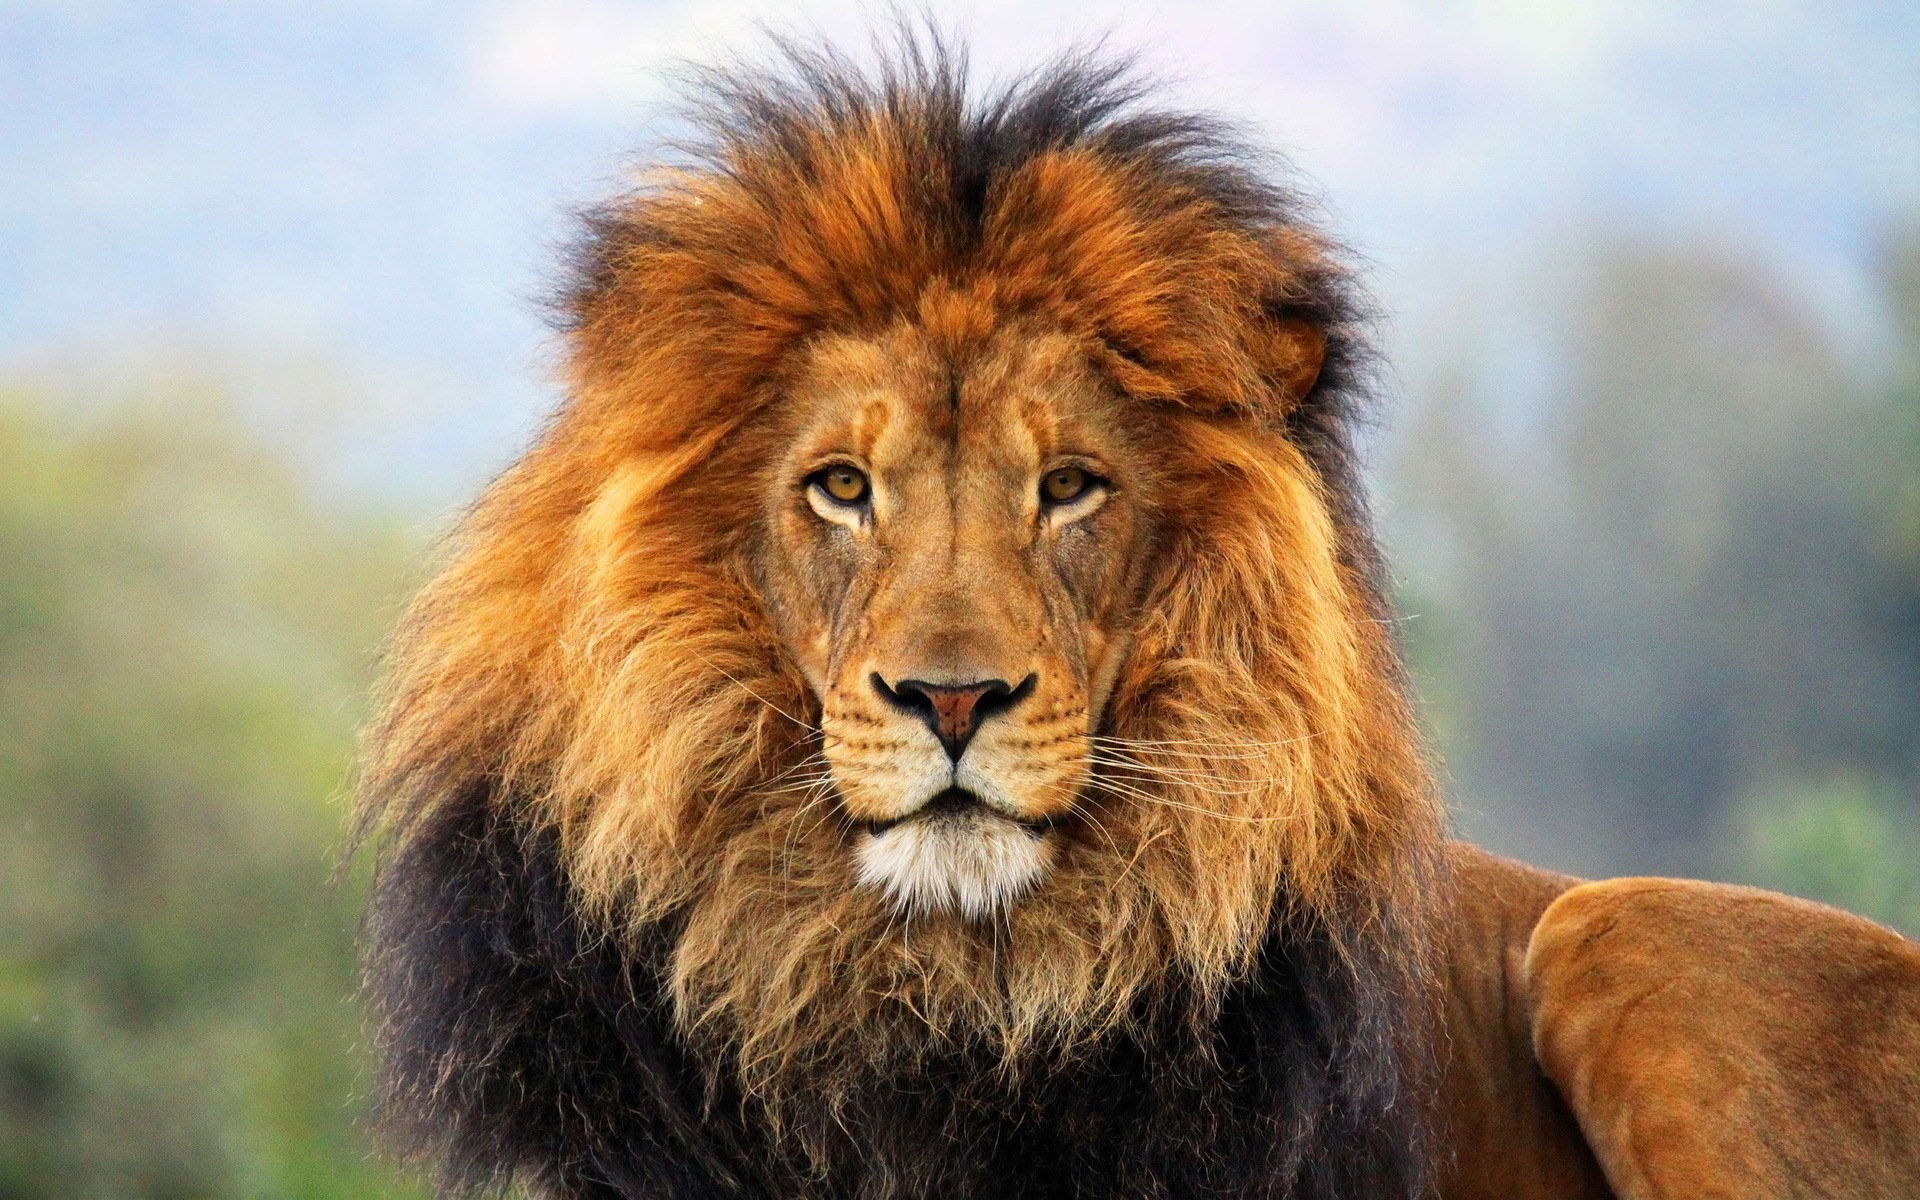 WWW Lion Wallpaper Com